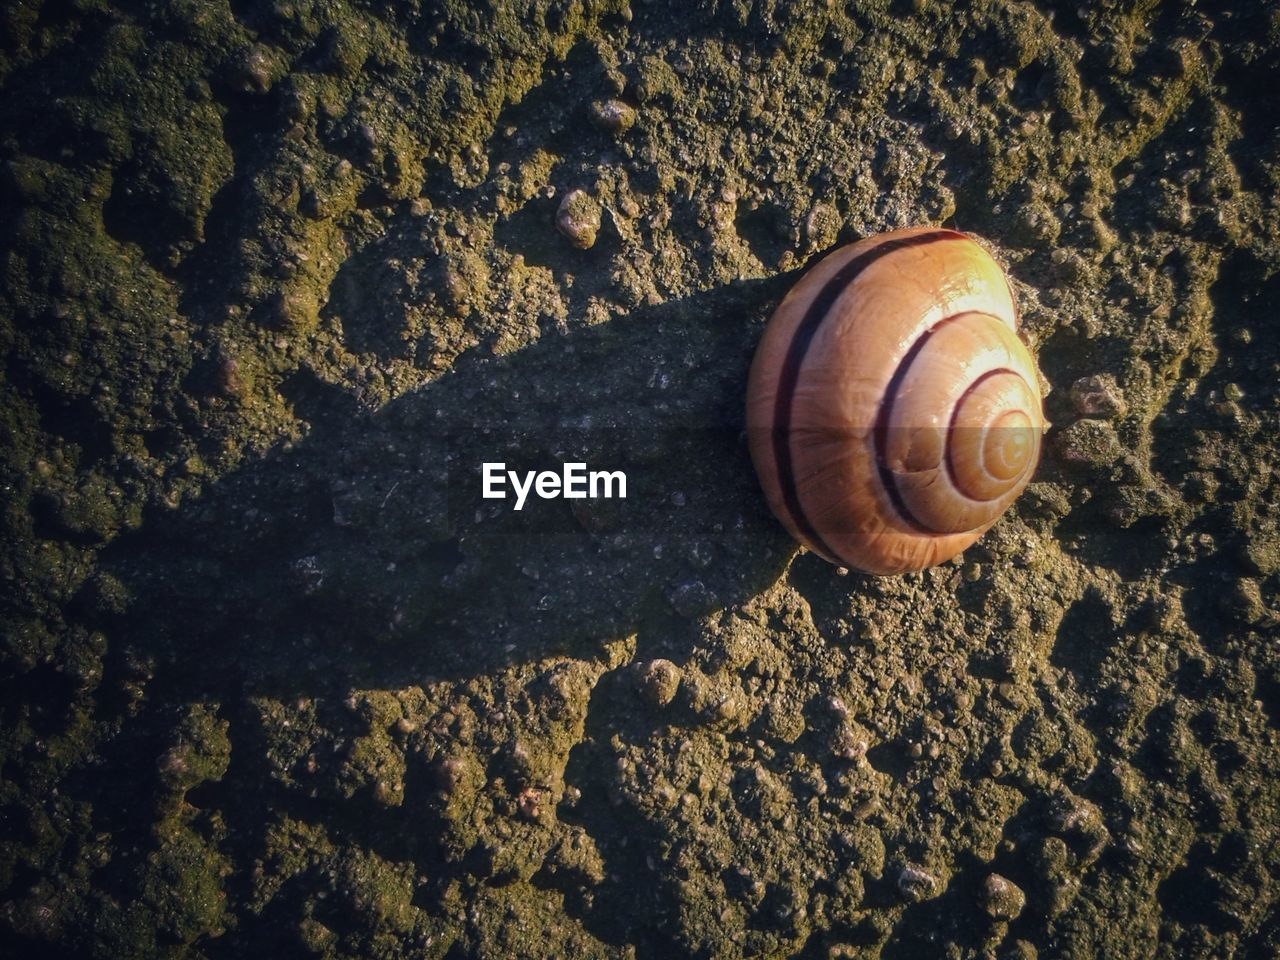 snail, gastropod, animal shell, one animal, animal themes, wildlife, animals in the wild, nature, fragility, no people, close-up, slimy, outdoors, day, sand, sea life